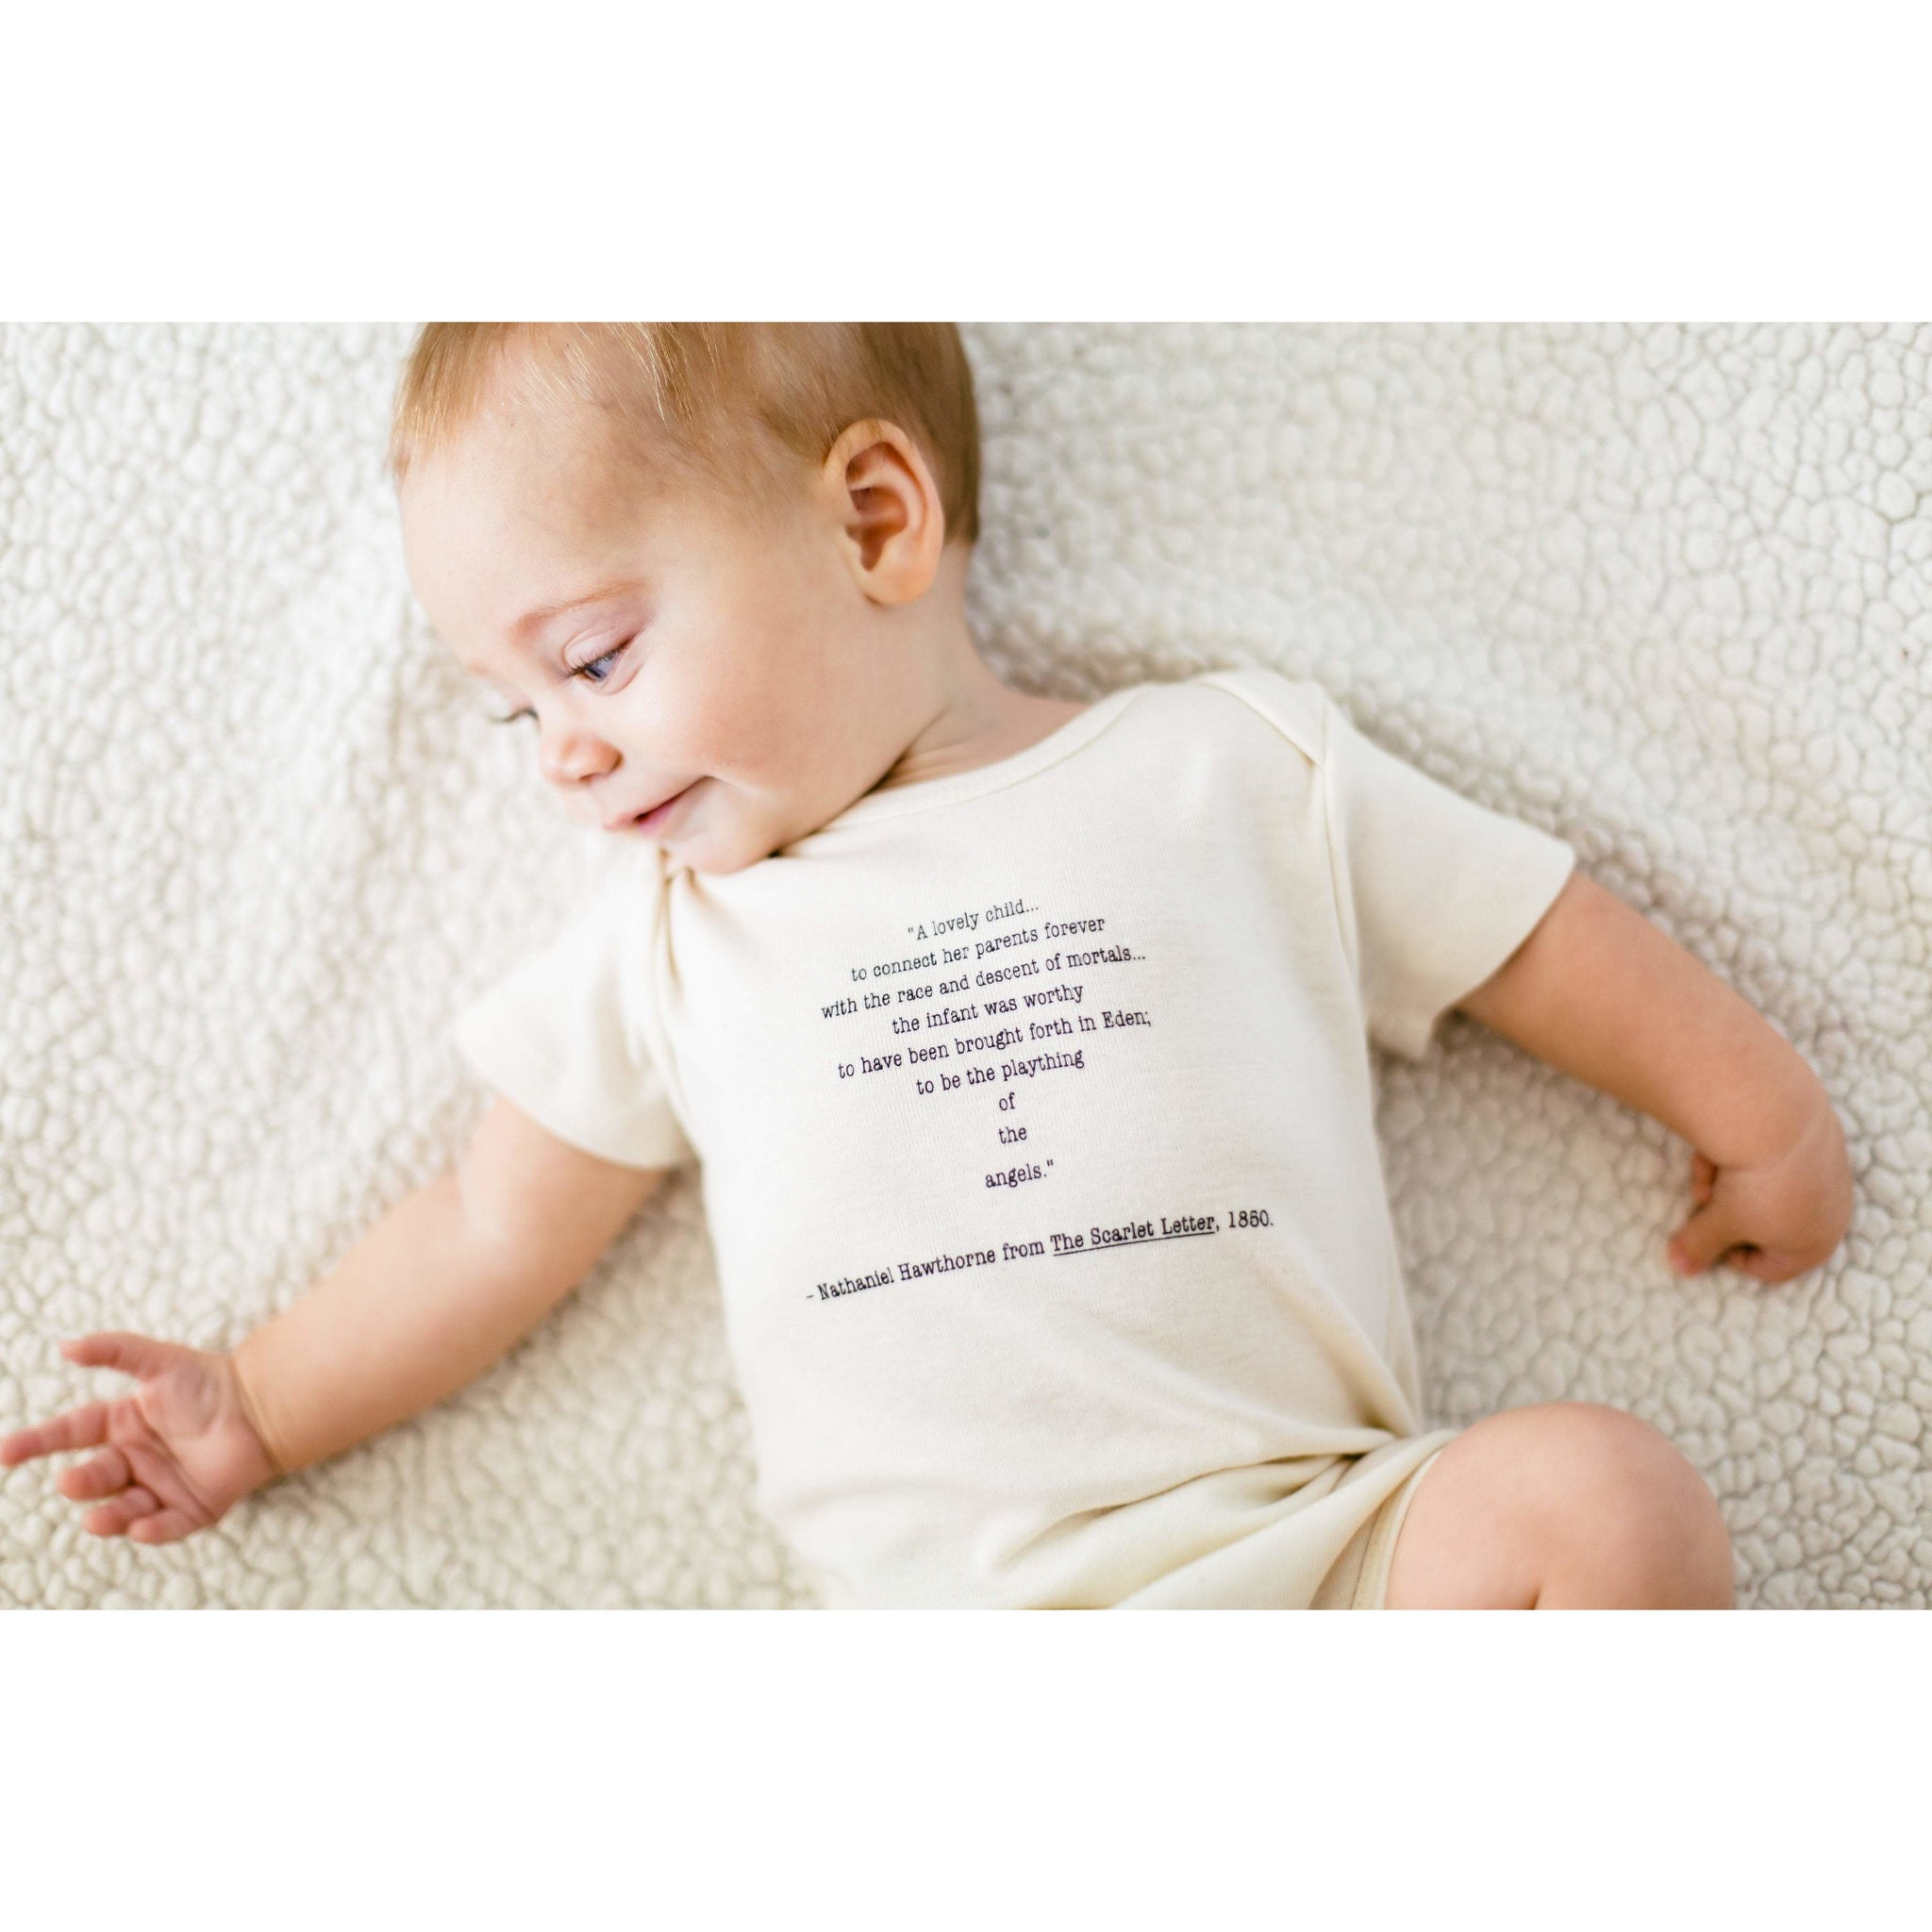 018a7a0538a7 Hawthorne quote baby rompers - Simply Chickie